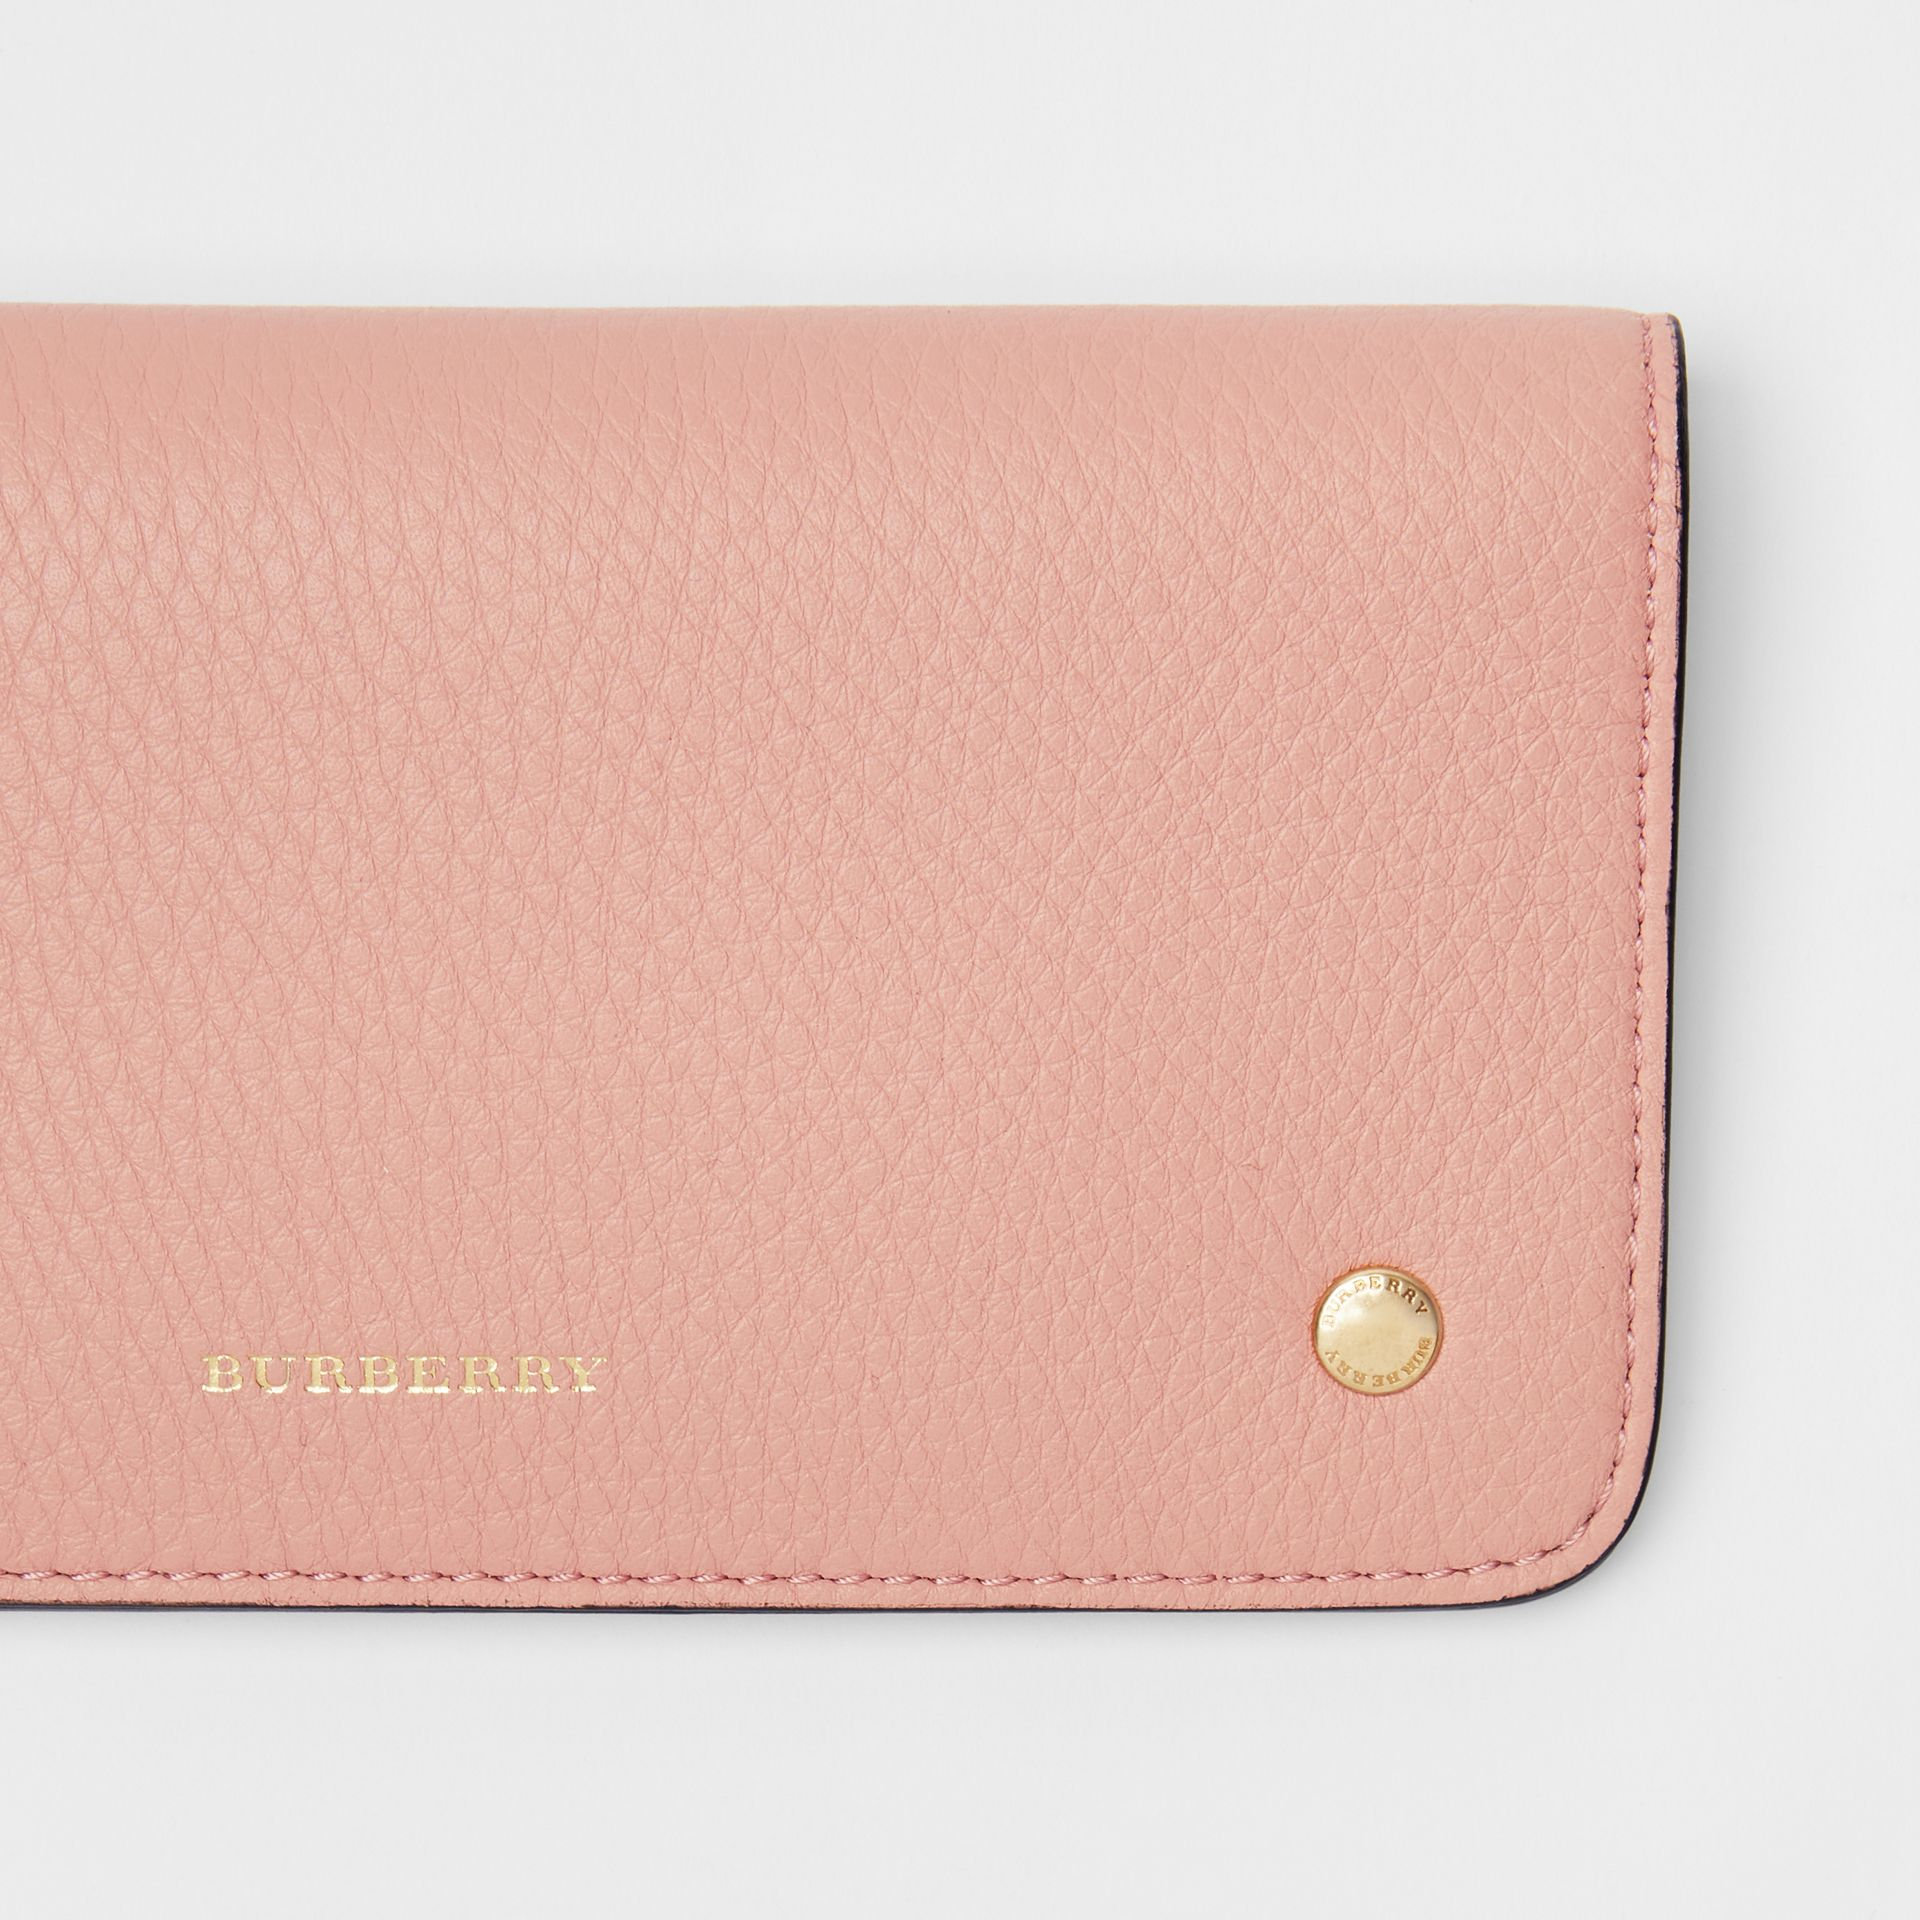 Leather Phone Wallet in Ash Rose - Women | Burberry - gallery image 1